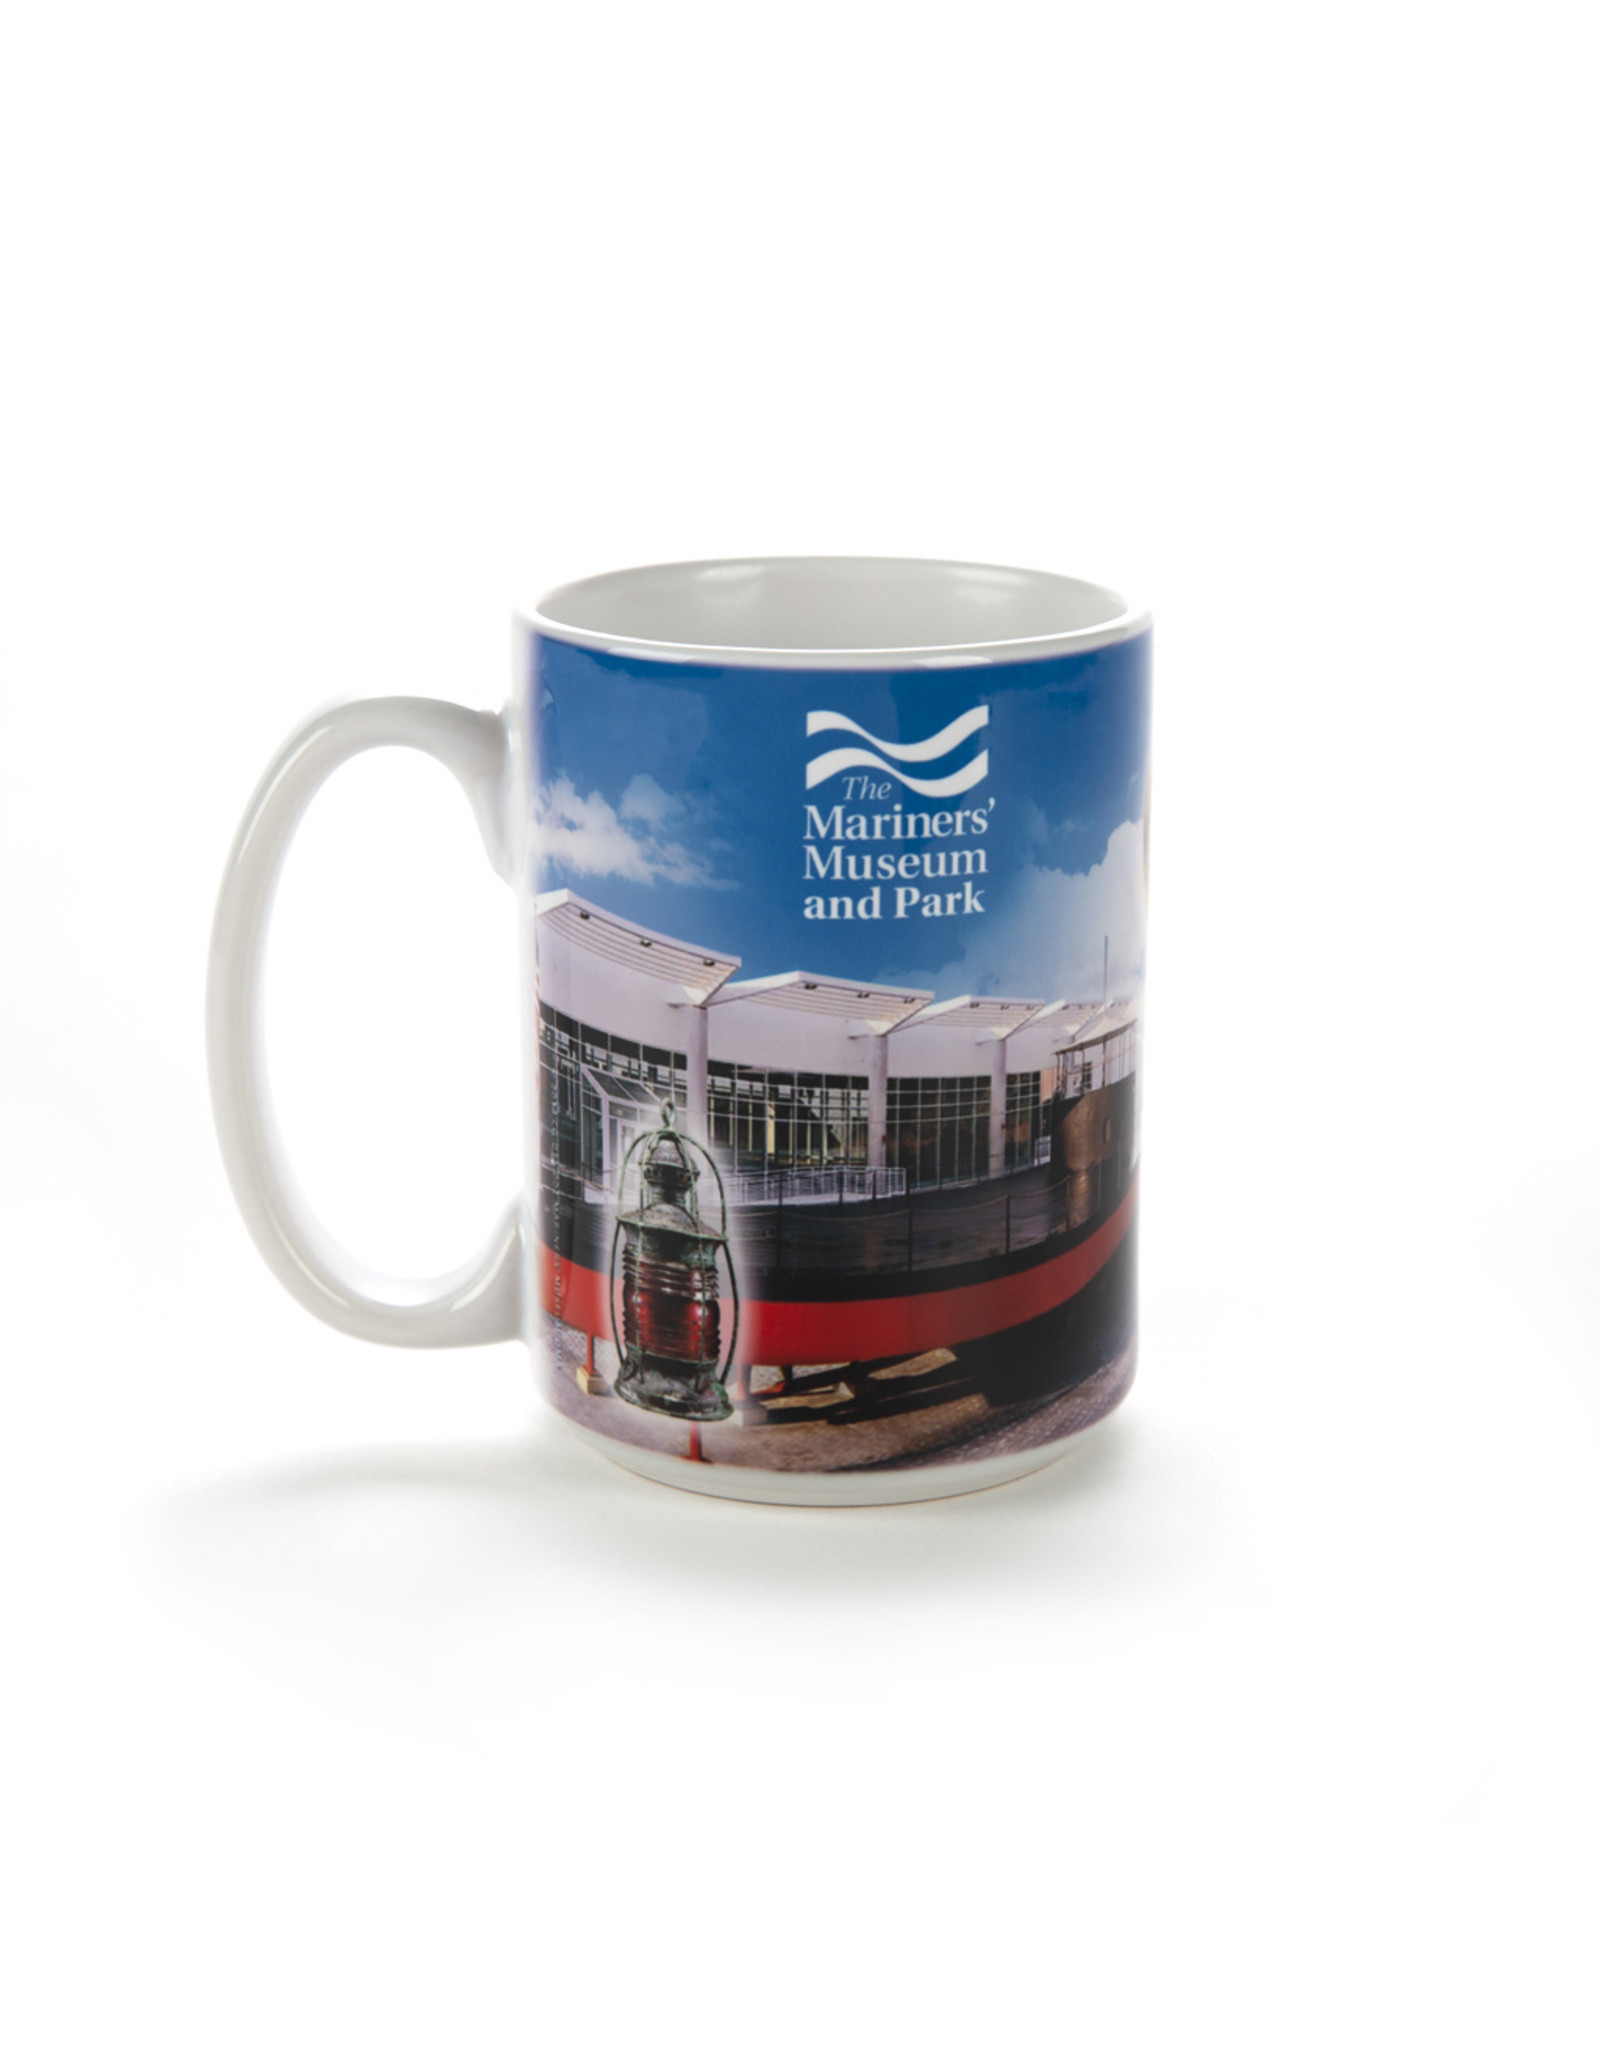 The Mariners' Museum and Park Collage  Coffee Mug